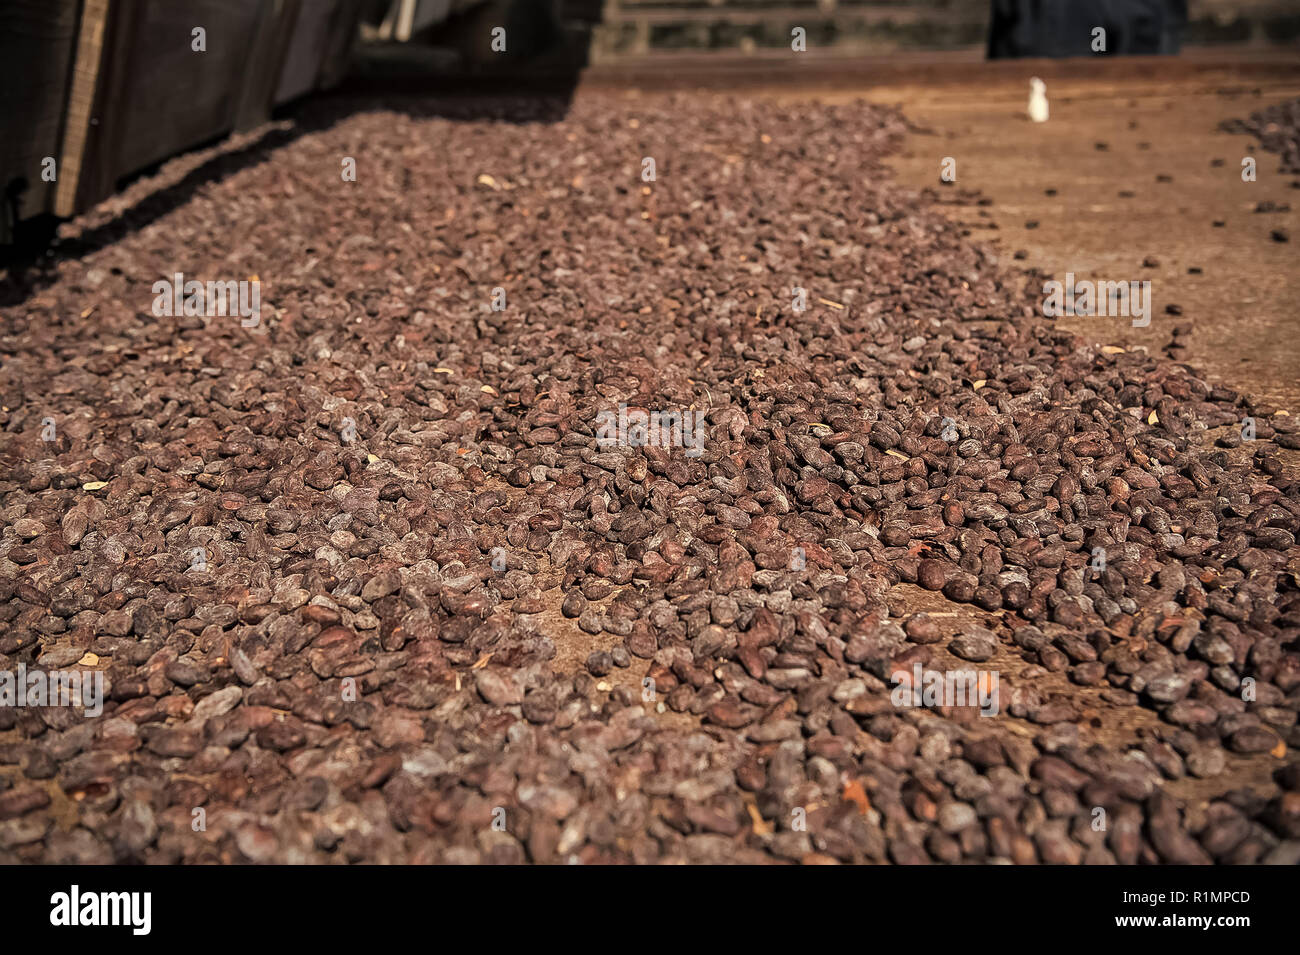 Cocoa raw beans drying on rusty iron board on farm on blurred background. Organic cacao seeds. Chocolate and healthy diet - Stock Image